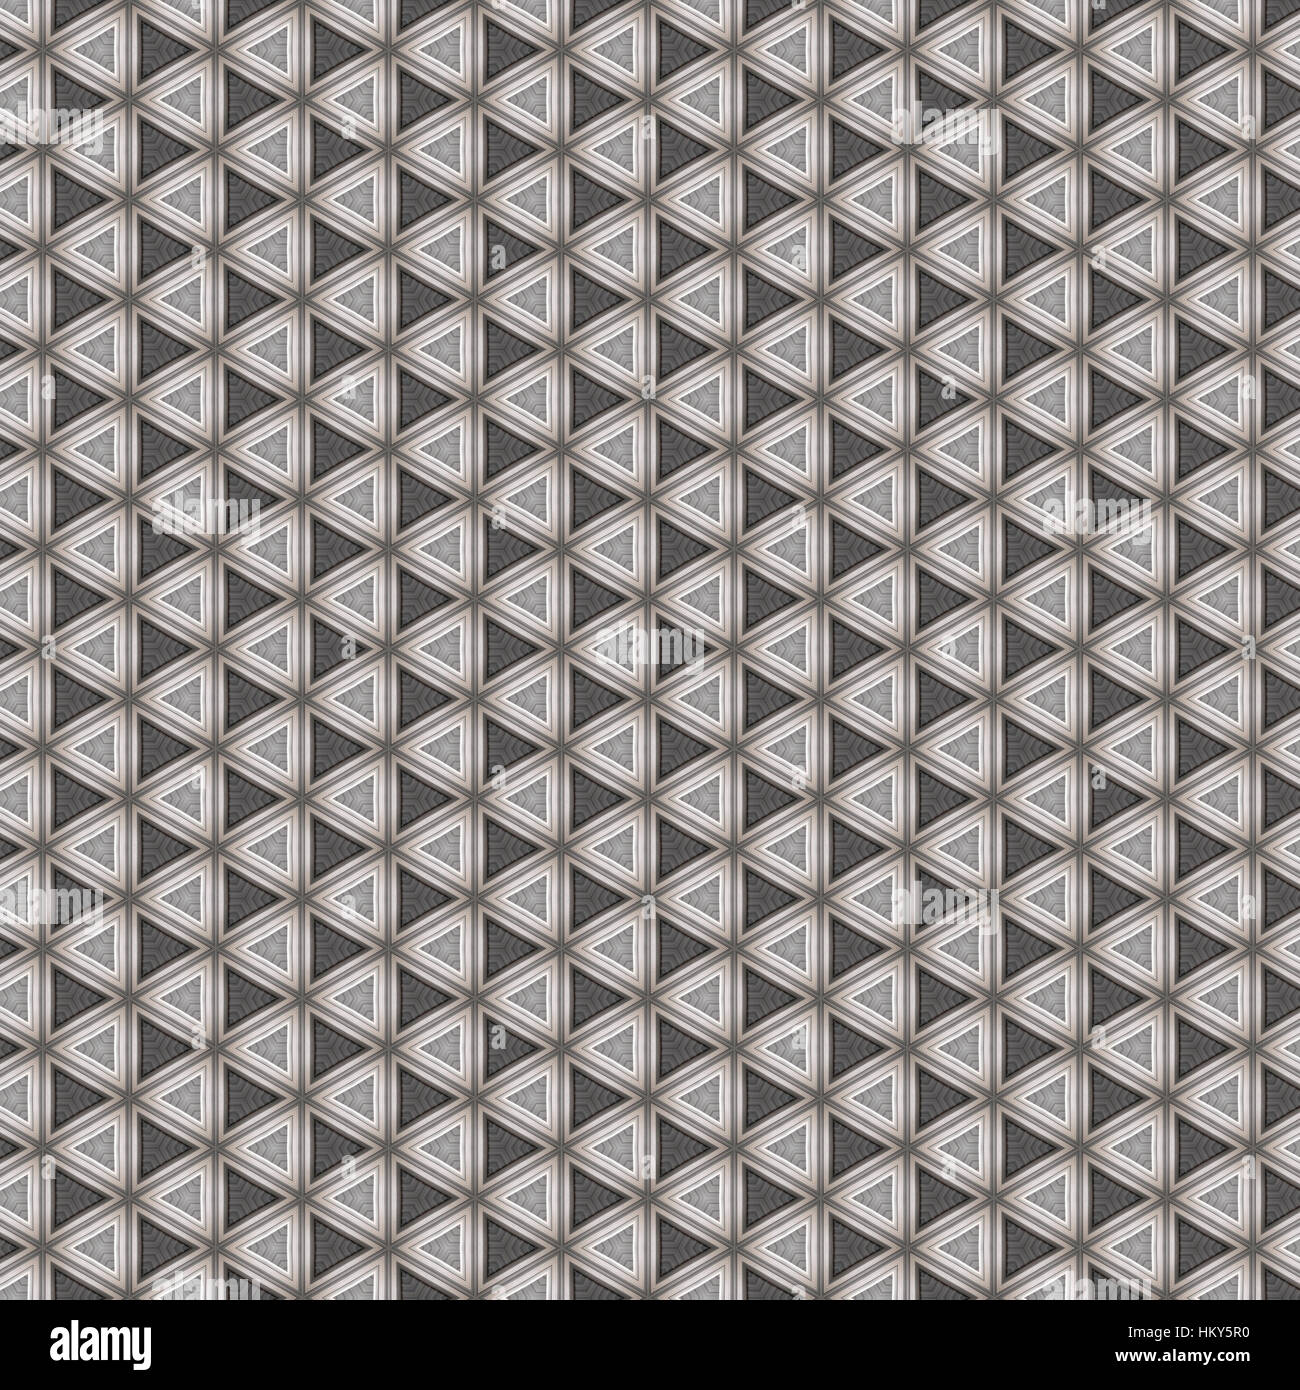 Chrome steel pattern with leather effect - Stock Image